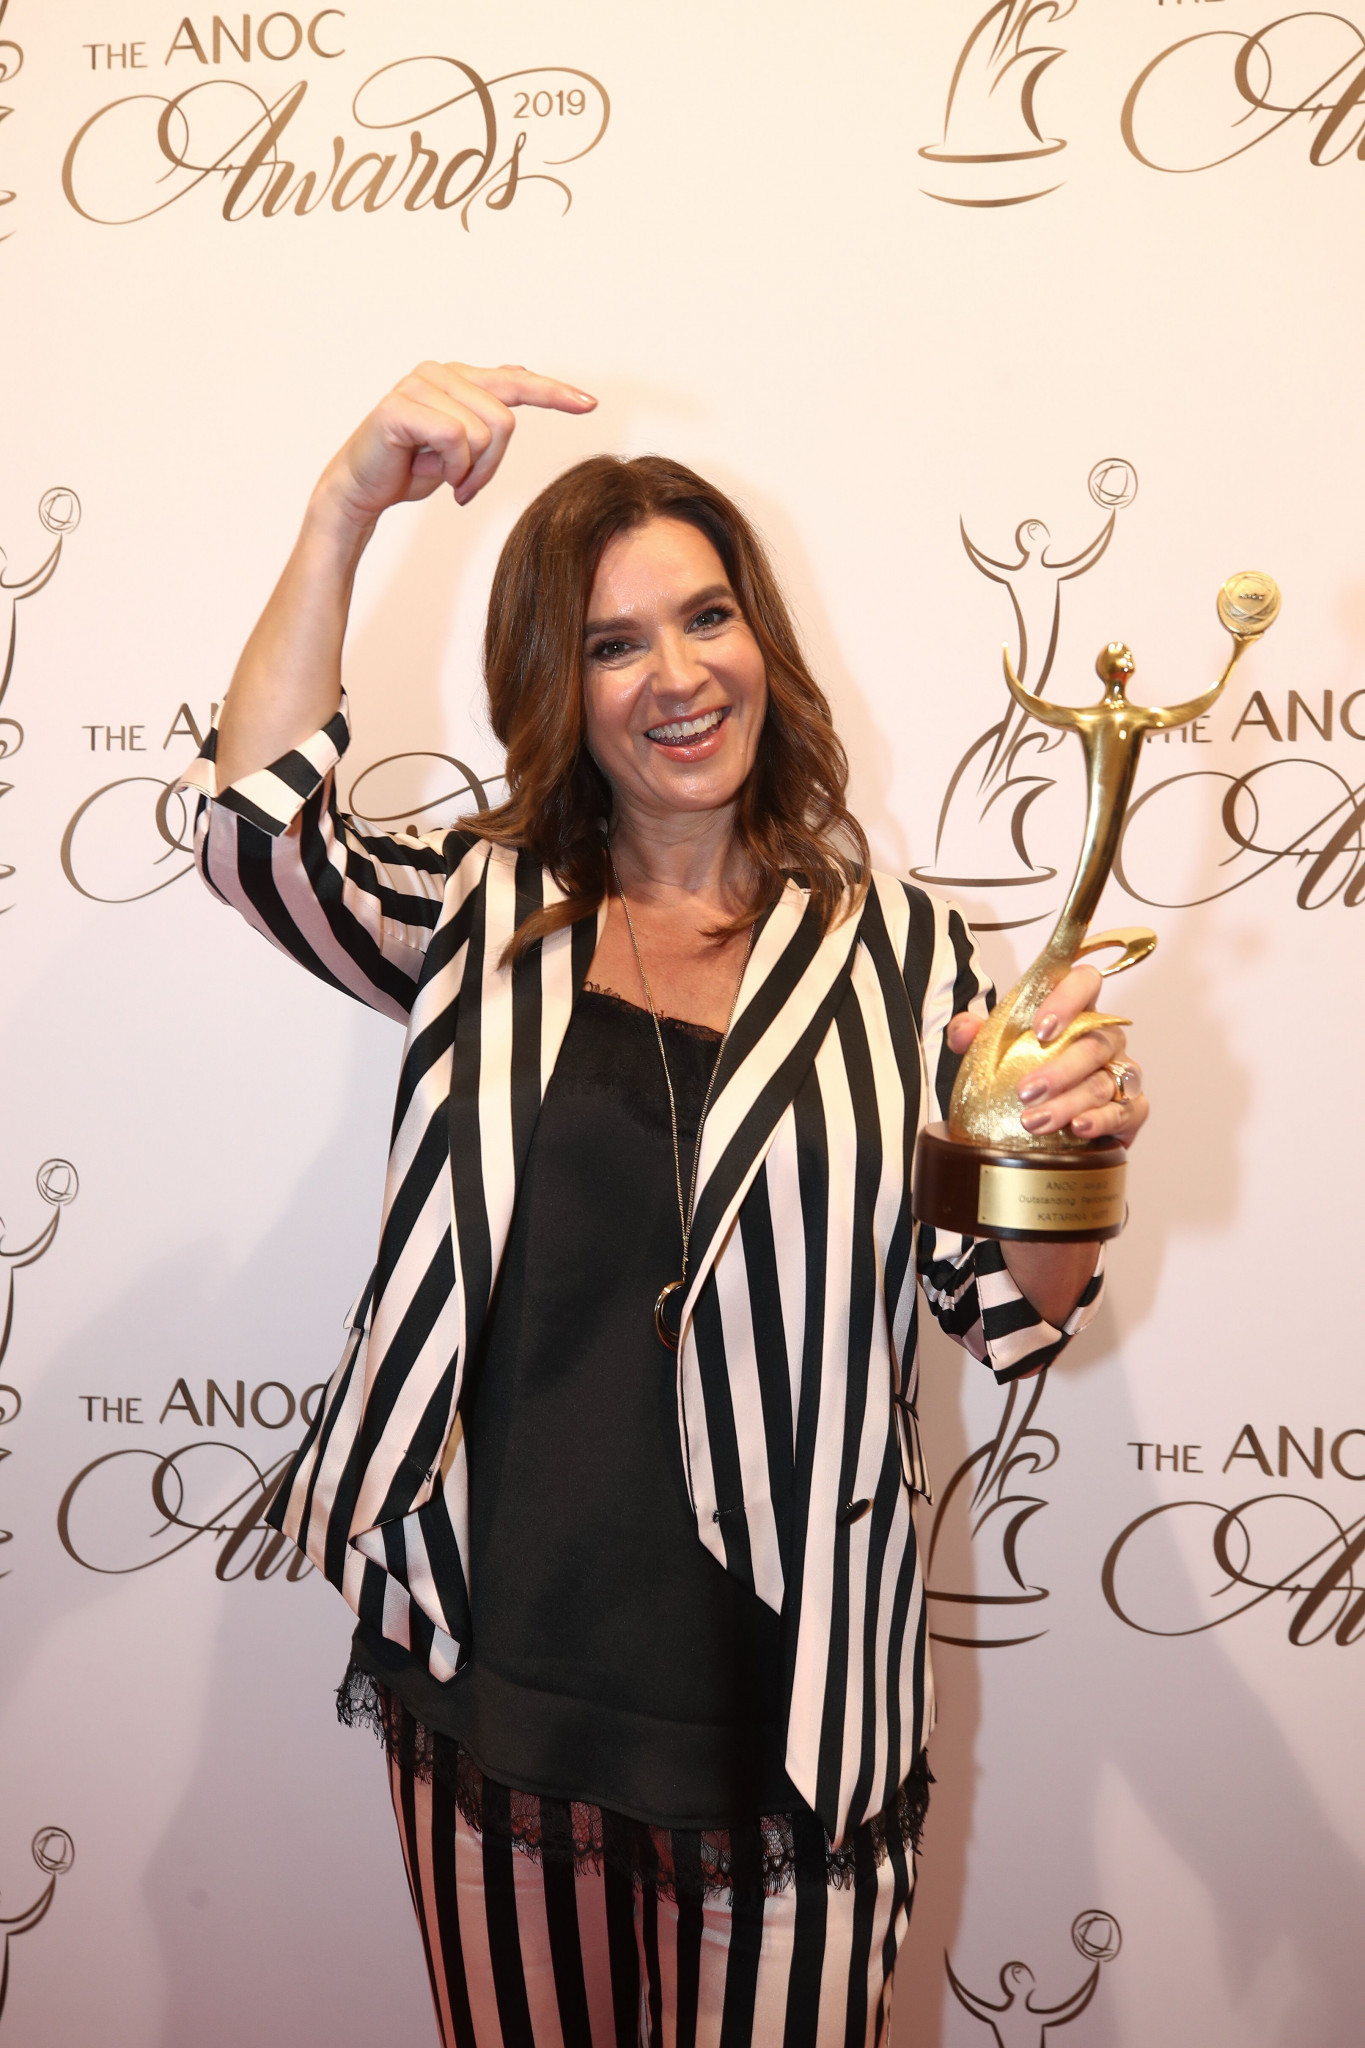 Figure skater Katarina Witt won the outstanding performance prize ©ANOC